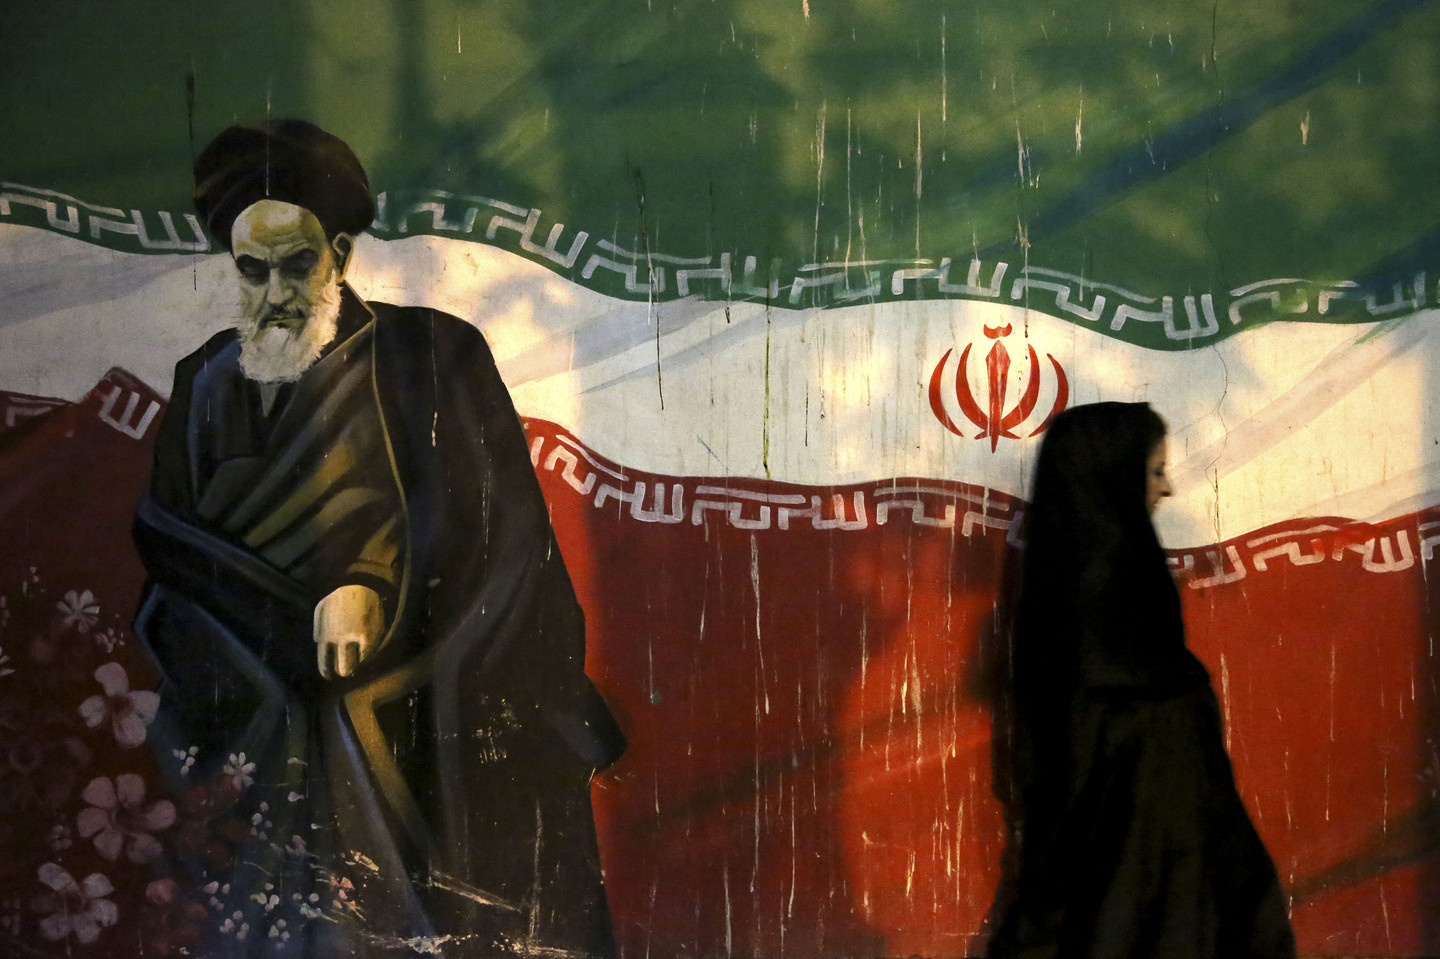 Iran May up Its Aggression As the U.S. Expands Sanctions